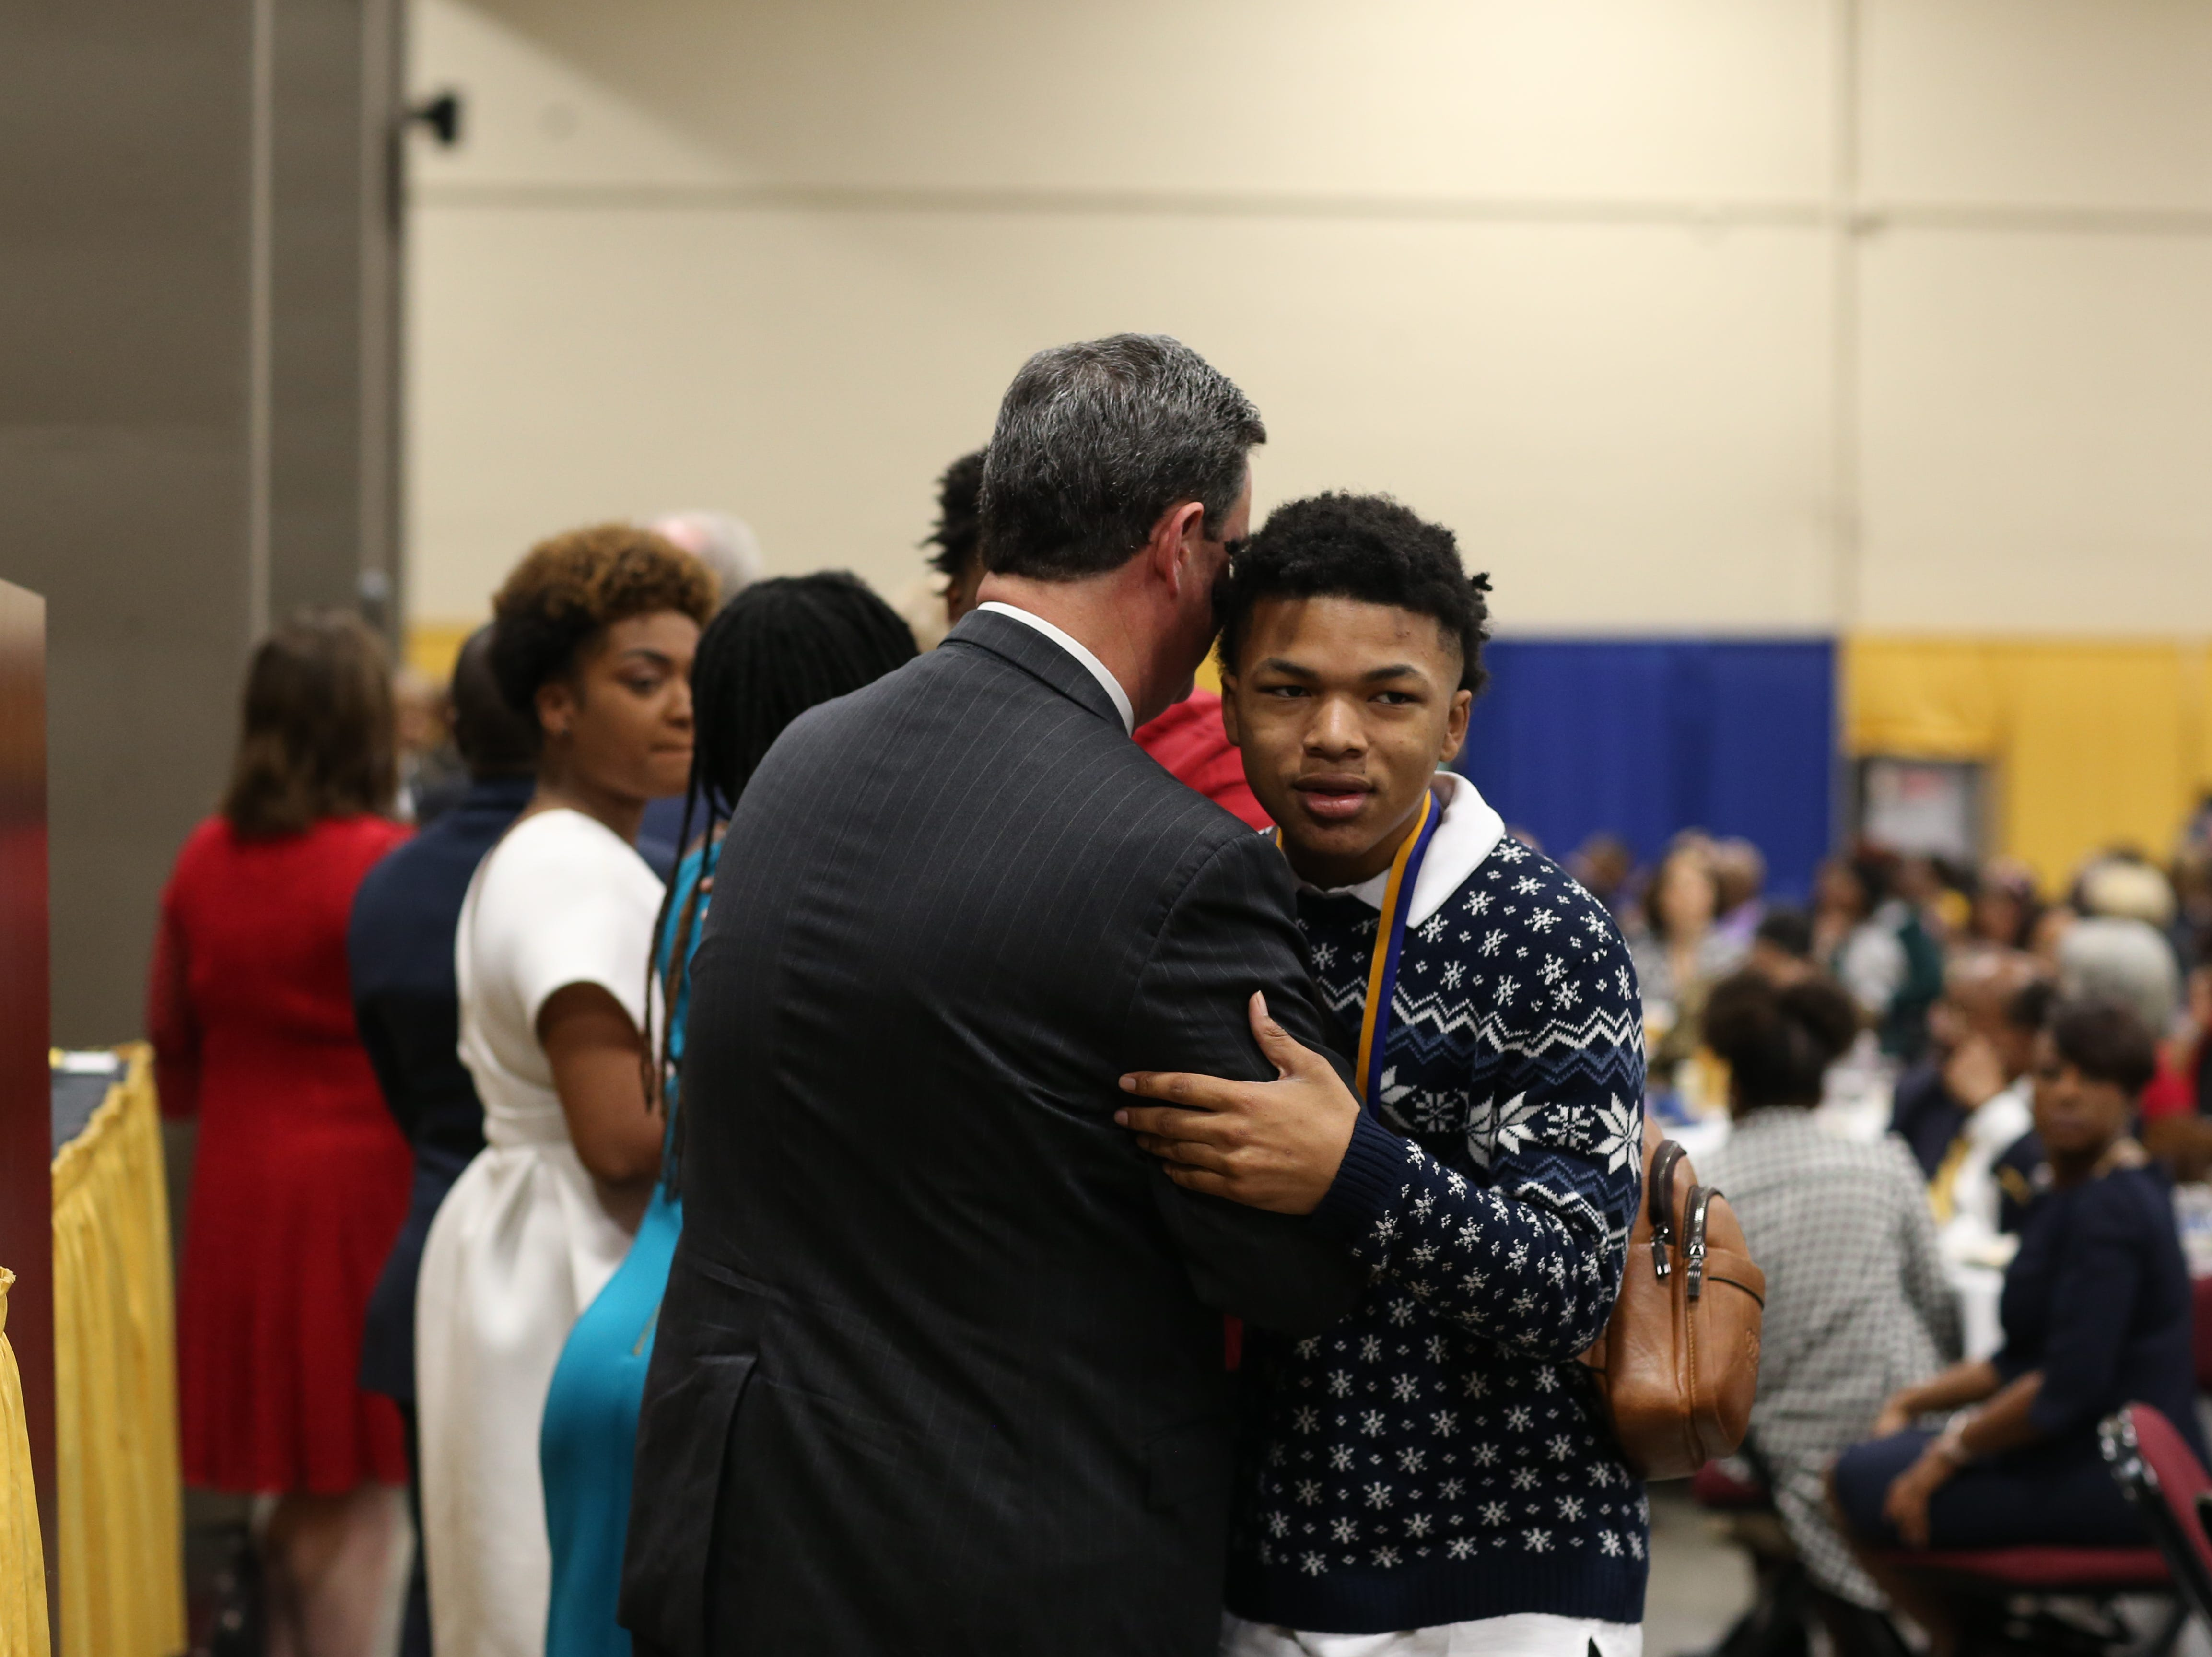 De'Mari Williams, 15, of Success Academy, is congratulated by Mayor John Dailey after receiving a medal during the Martin Luther King Jr. commemorative breakfast at Donald L. Tucker Civic Center Friday, Jan. 18, 2019.